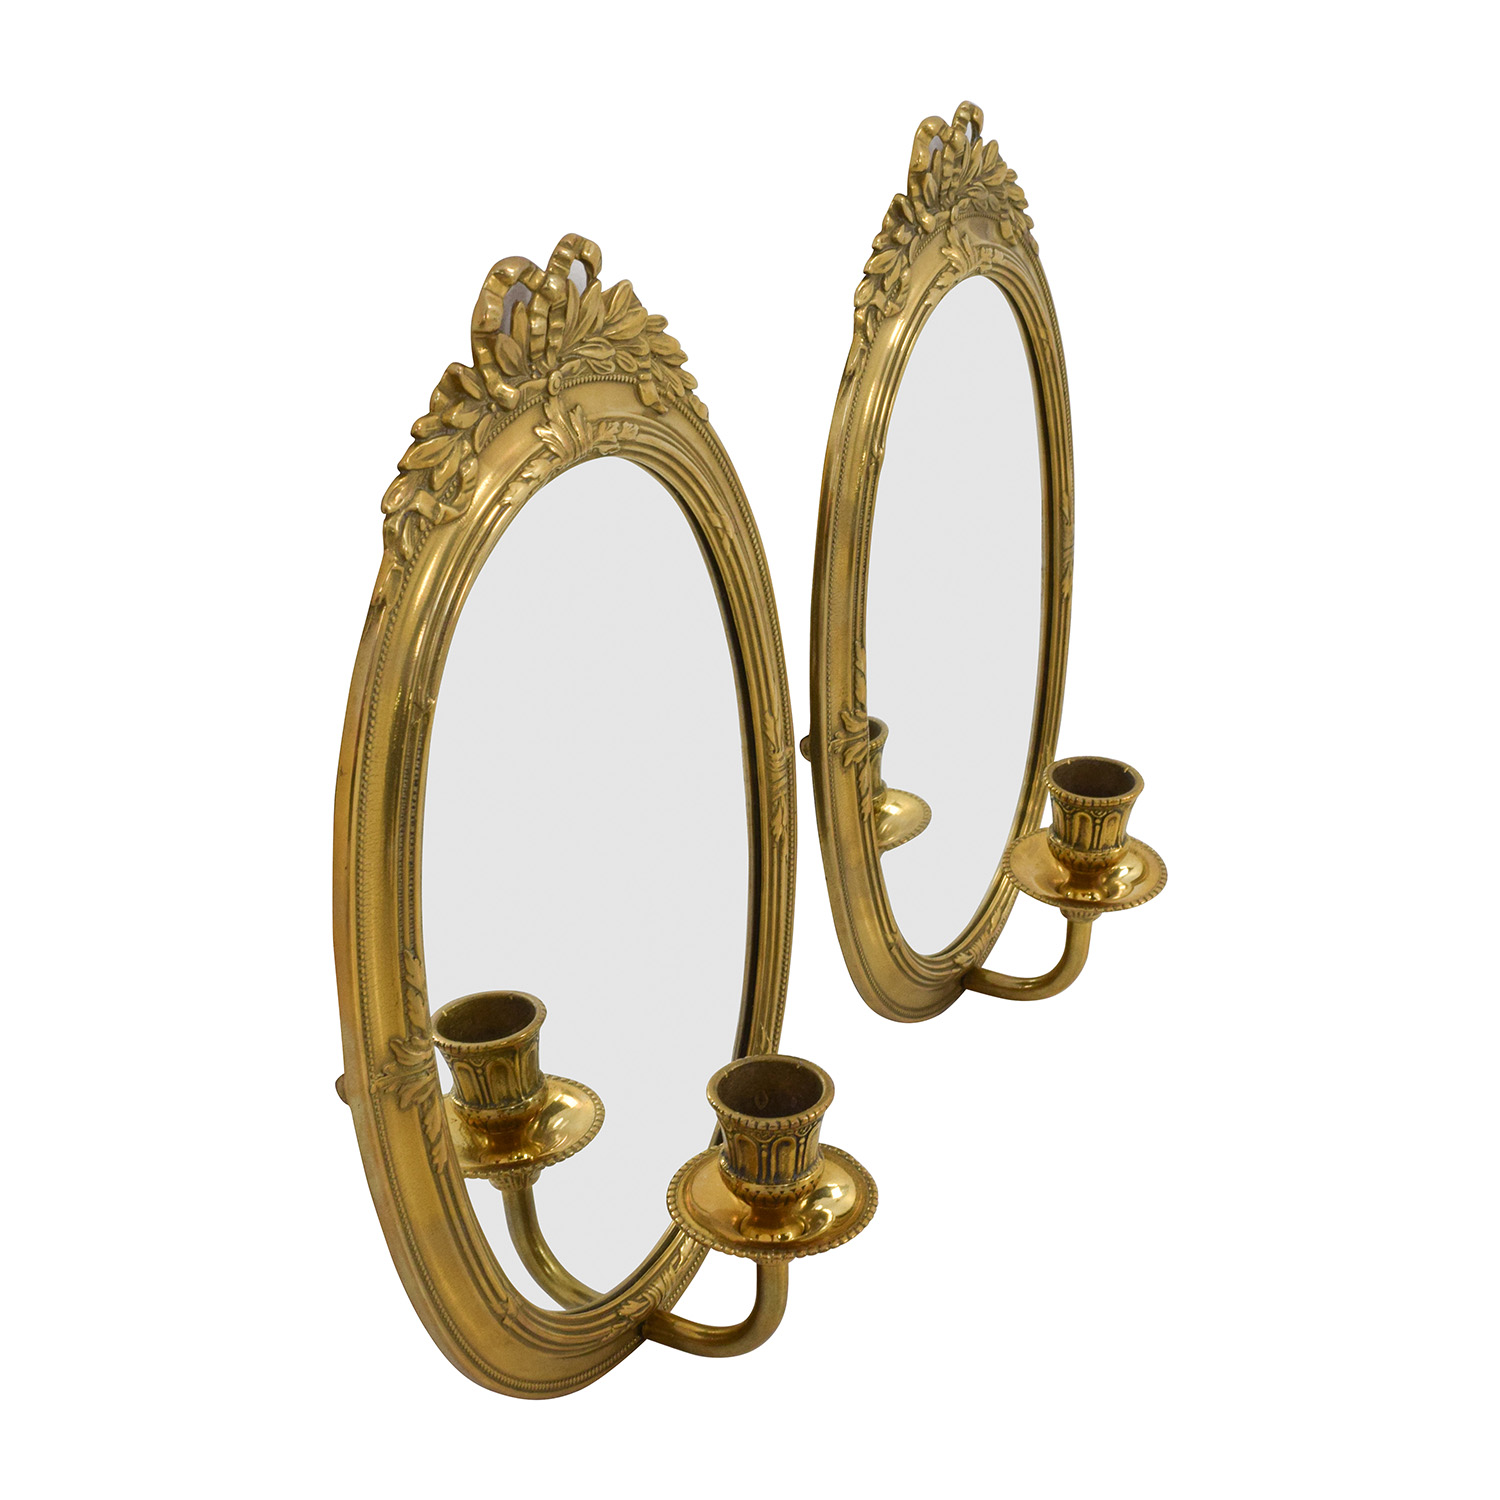 Vintage Gold Frame Wall Mirrors with Candle Holder discount